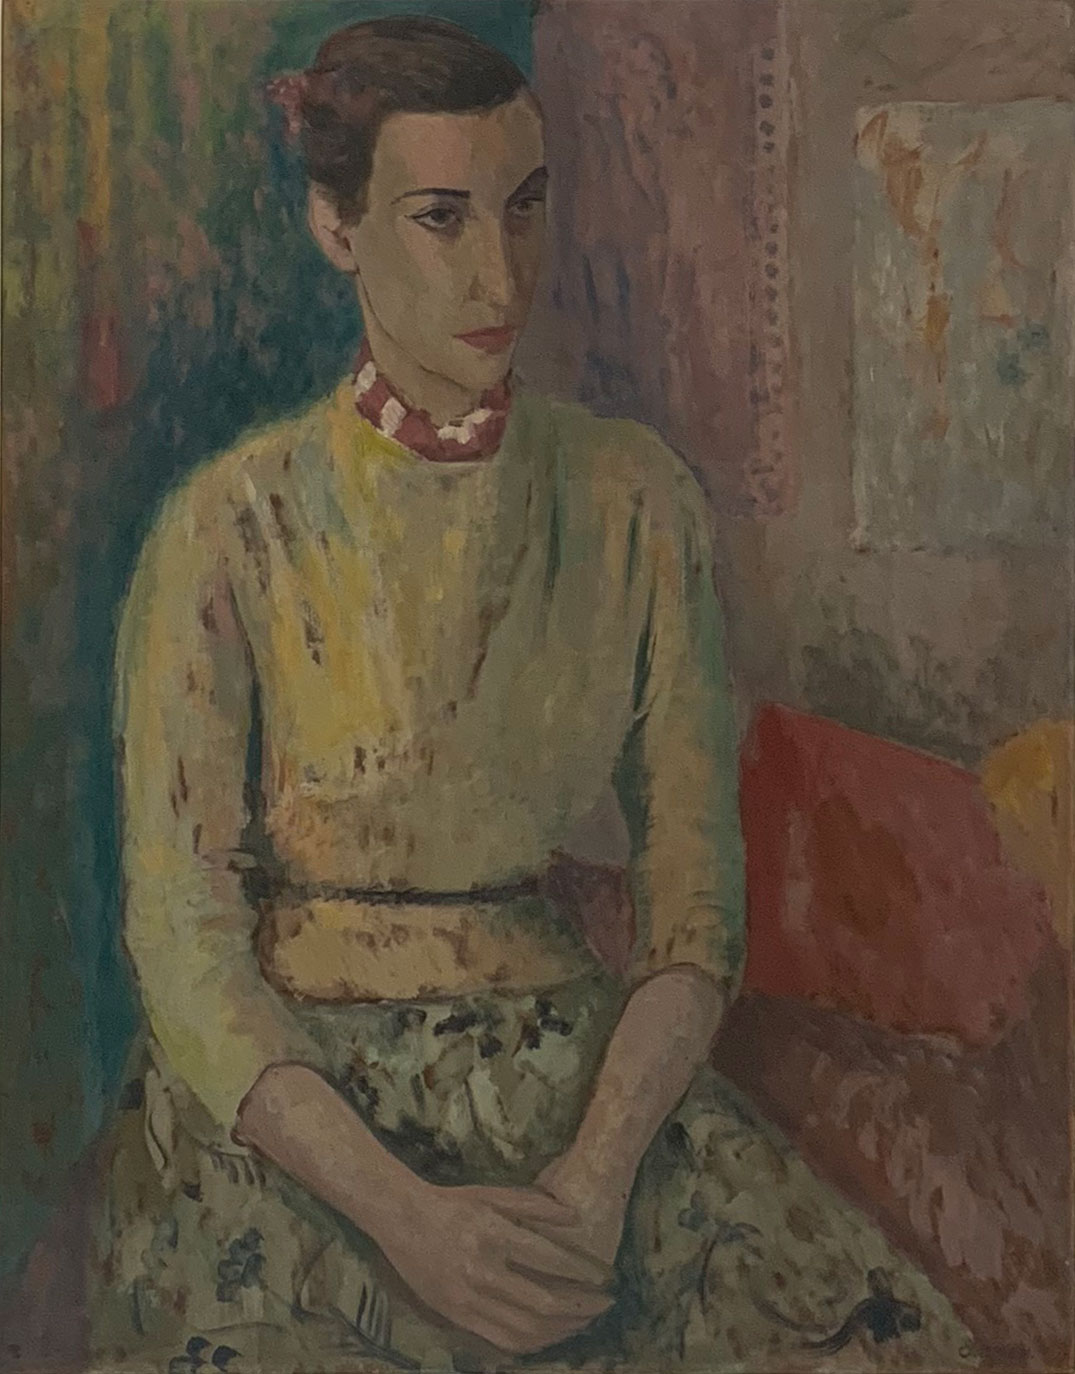 The First Mrs. Kmitt, c 1950's    oil on board 76.5 x 55.5 cm  signed lower right